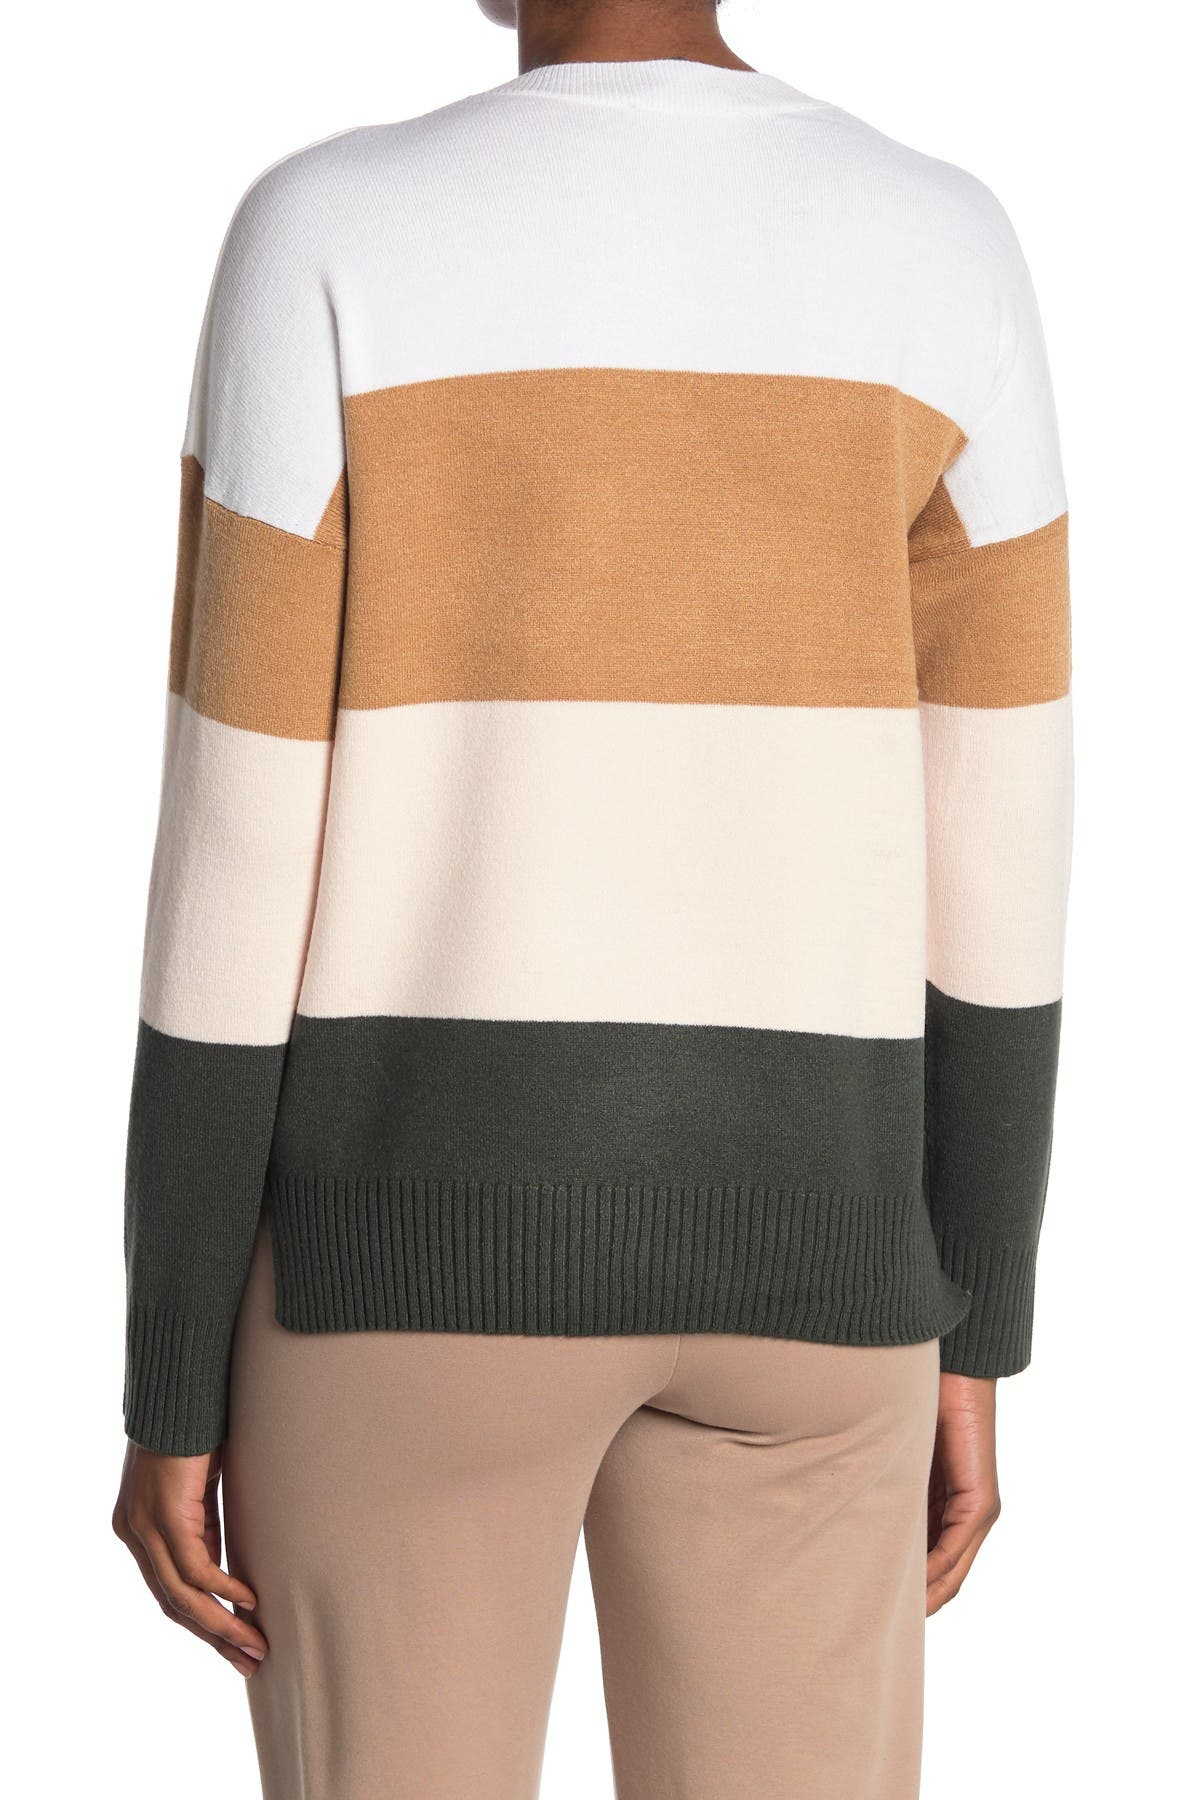 Image of French Connection Striped Crew Neck Sweater